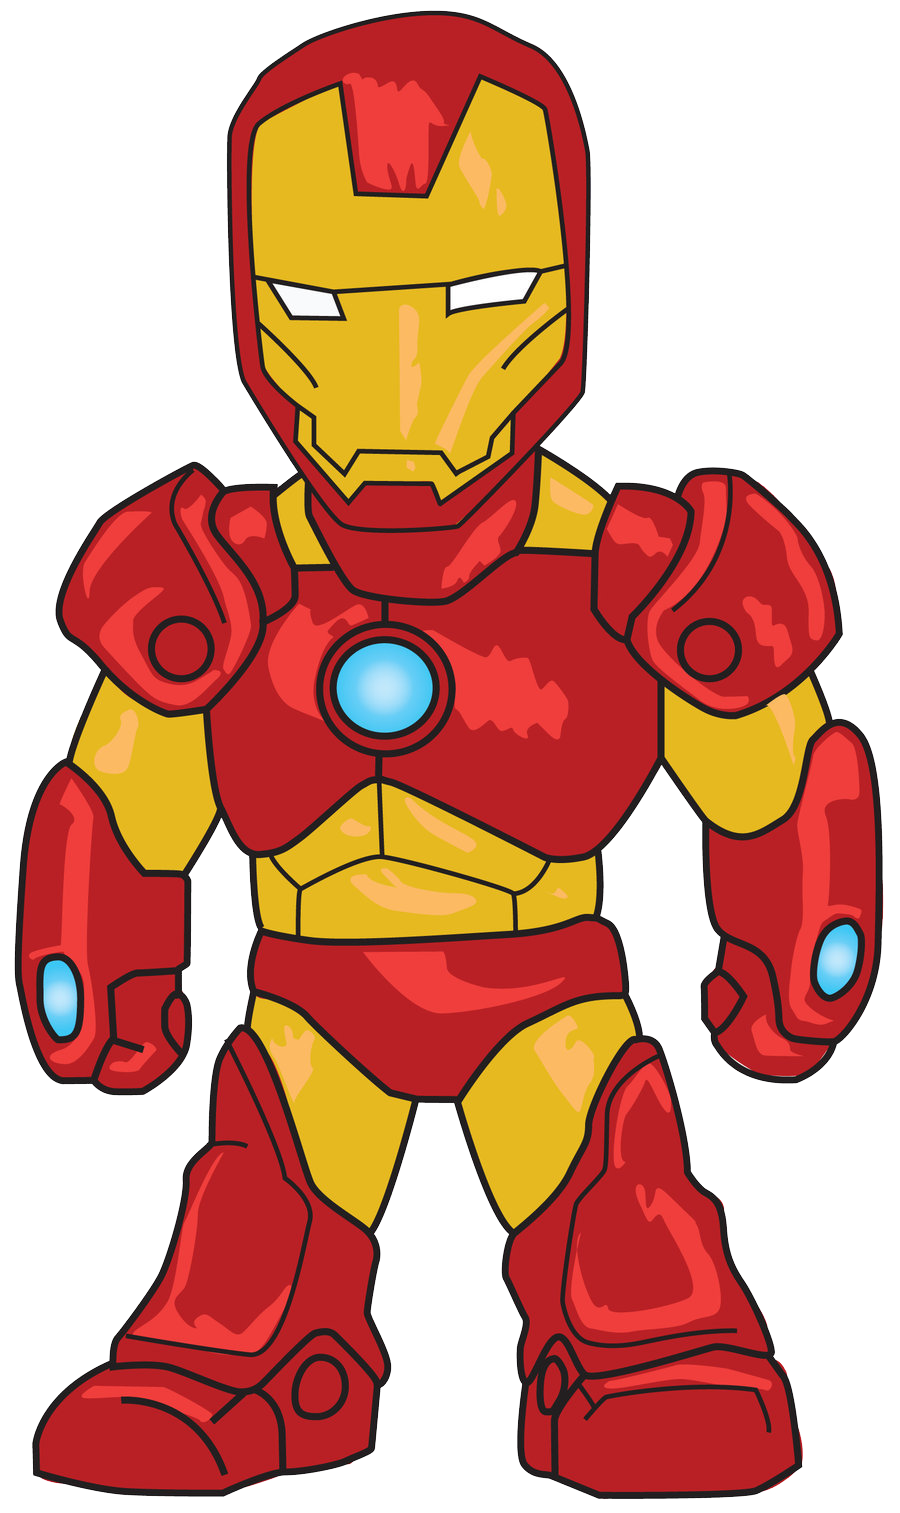 banner free download Iron man clip art. Cartoon clipart